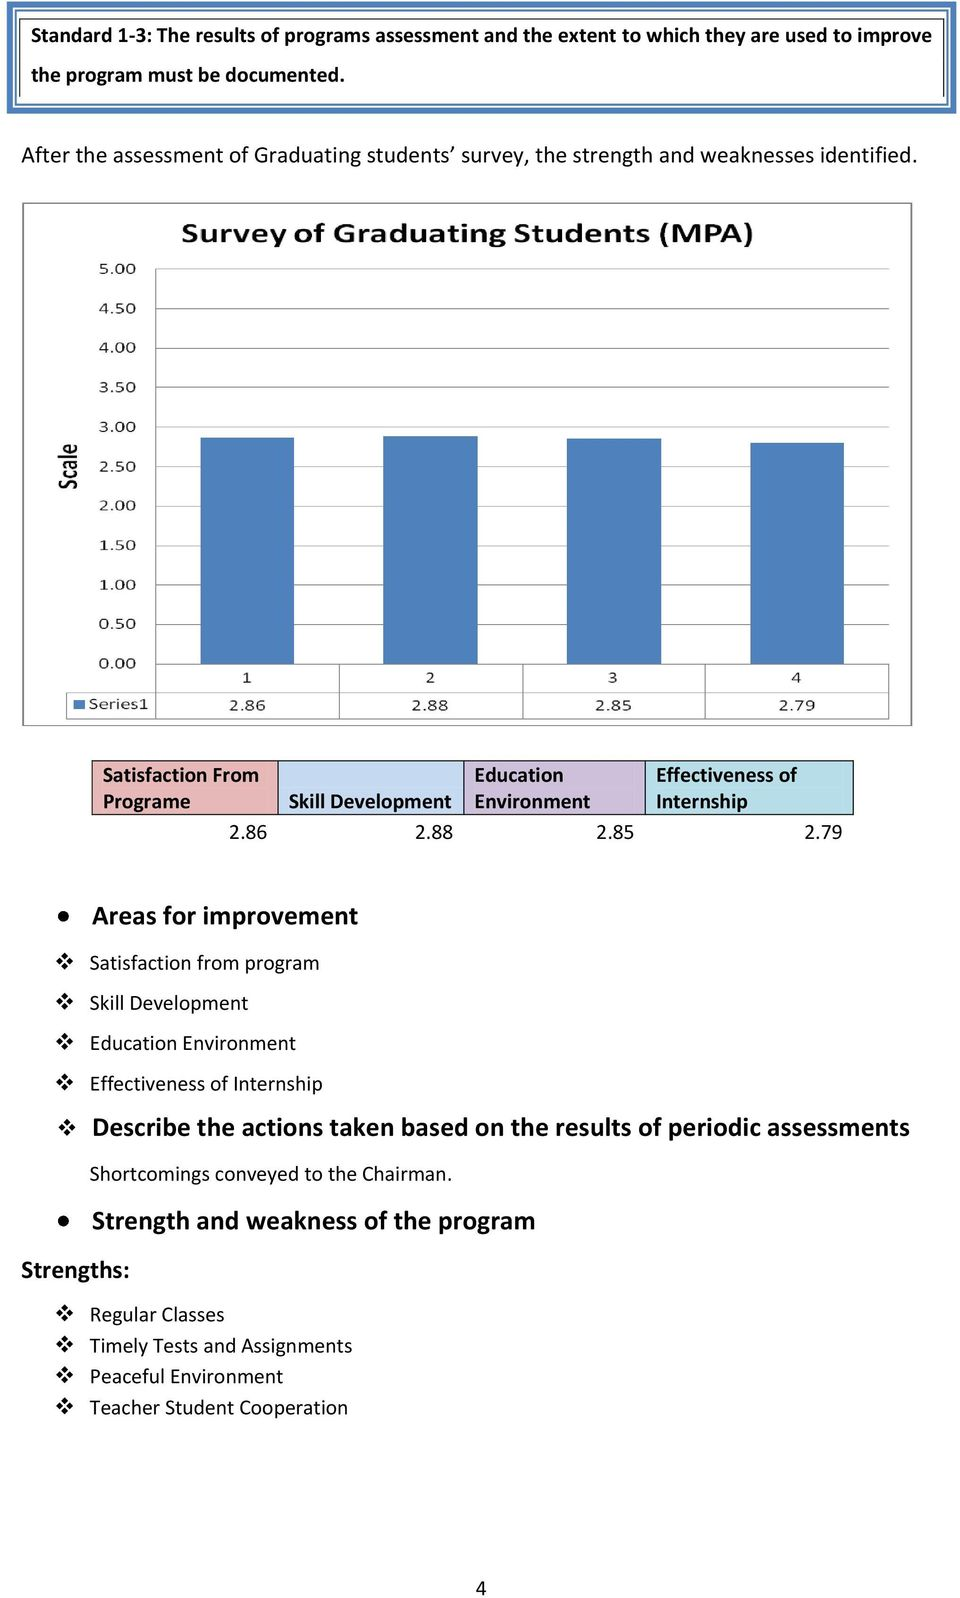 Satisfaction From Programe Skill Development Education Environment Effectiveness of Internship 2.86 2.88 2.85 2.